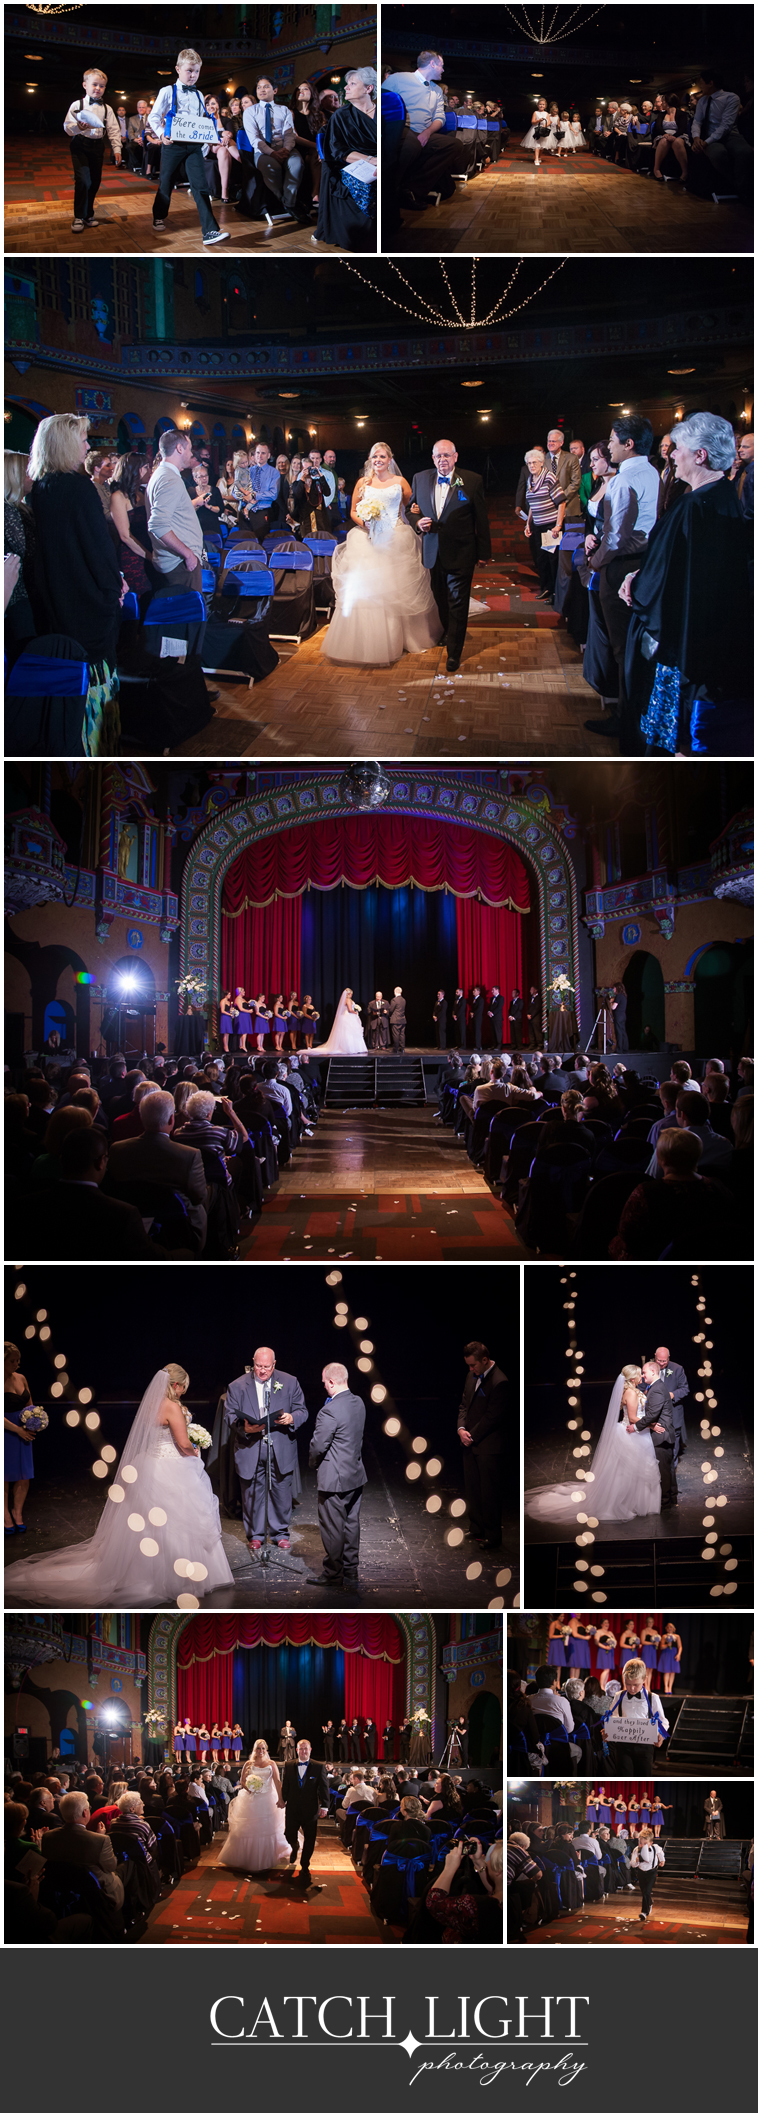 05_Wedding Ceremony Photography at Uptown Theater